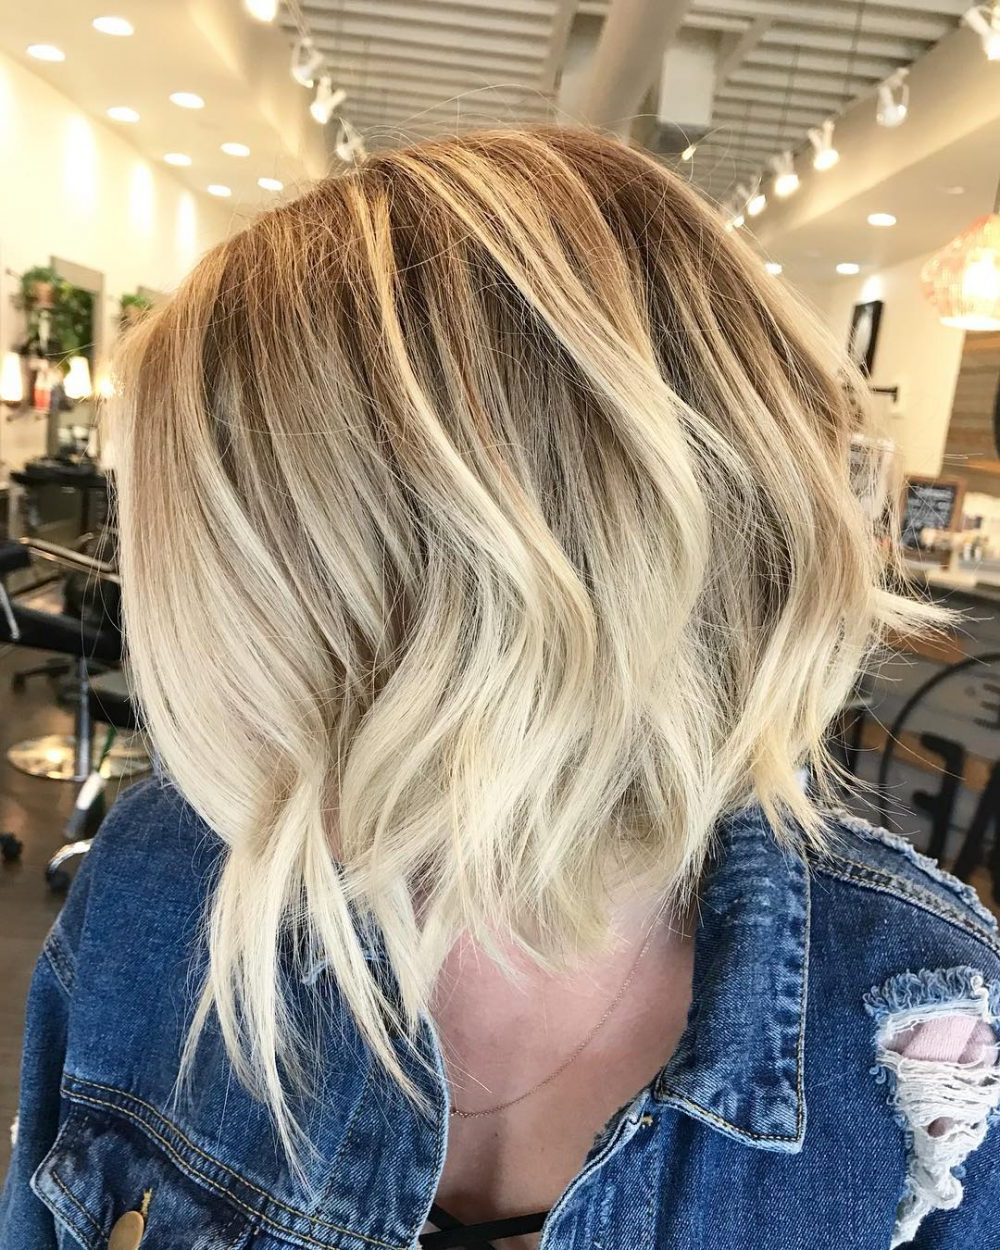 34 Best Choppy Layered Hairstyles (anyone Can Pull Off) Pertaining To Airy Gray Pixie Hairstyles With Lots Of Layers (View 13 of 20)